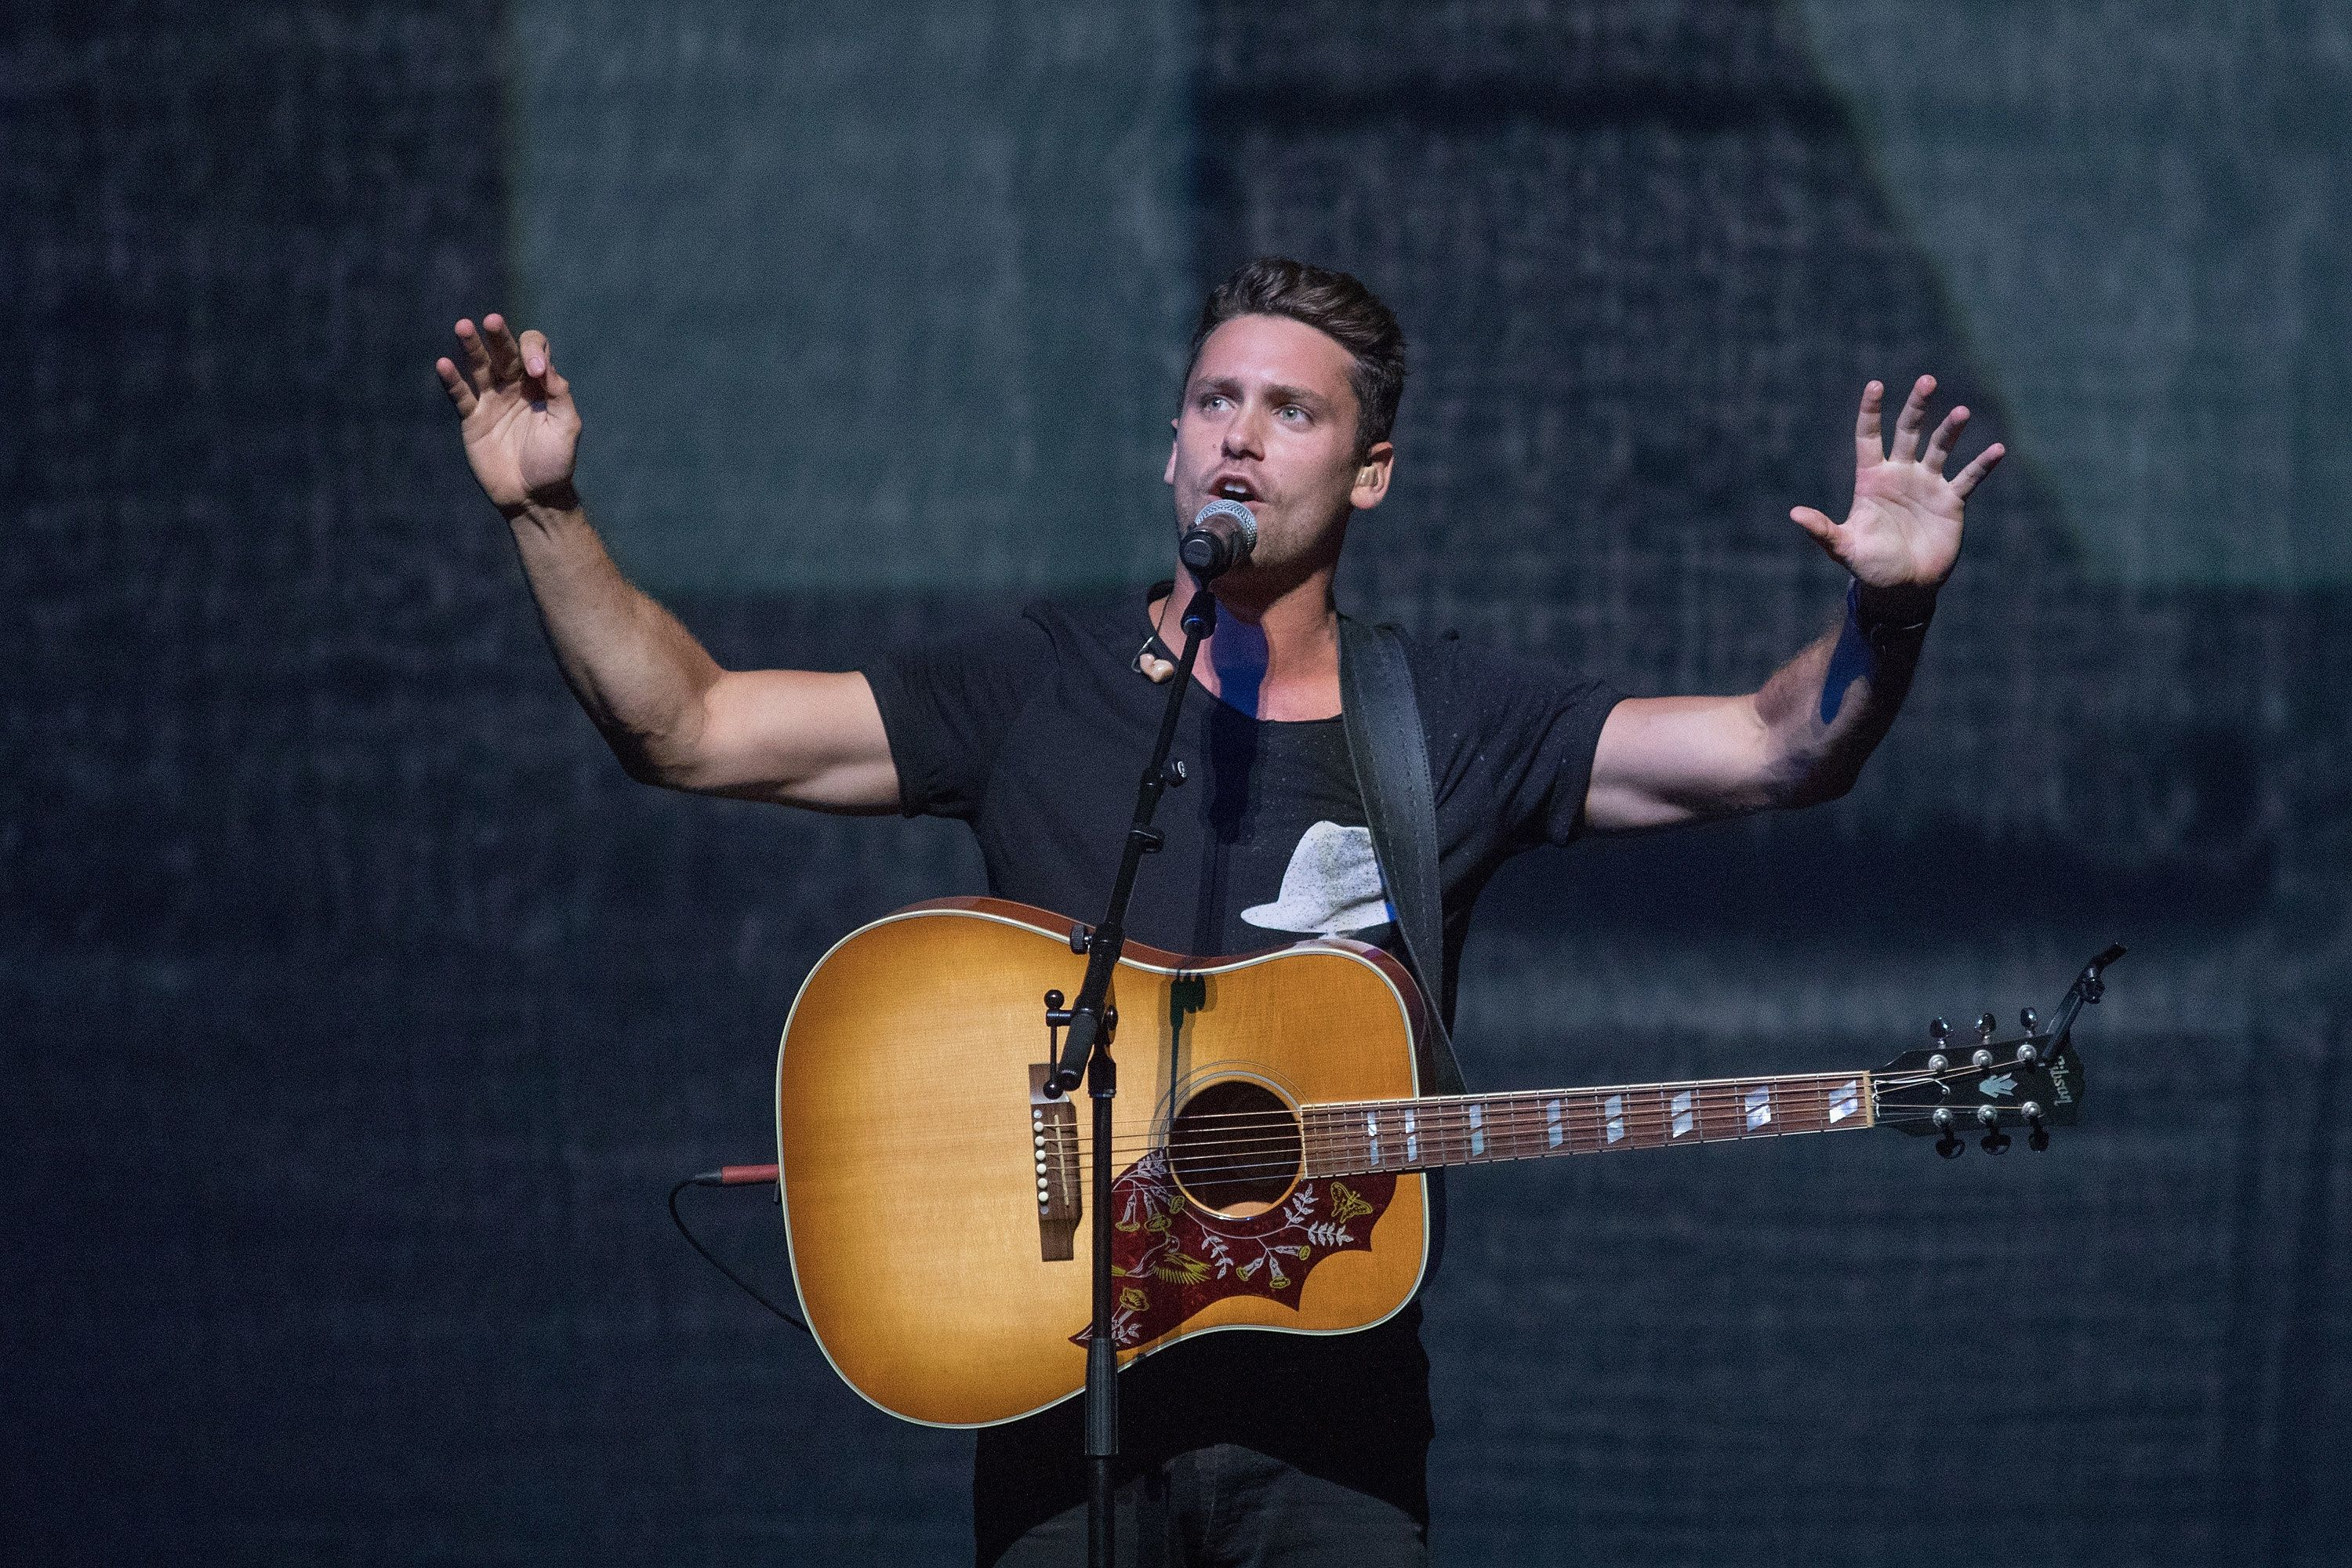 AUSTIN, TX - JUNE 07:  Singer-songwriter Bastian Baker performs in concert at the Frank Erwin Center on June 7, 2018 in Austin, Texas.  (Photo by Rick Kern/Getty Images)